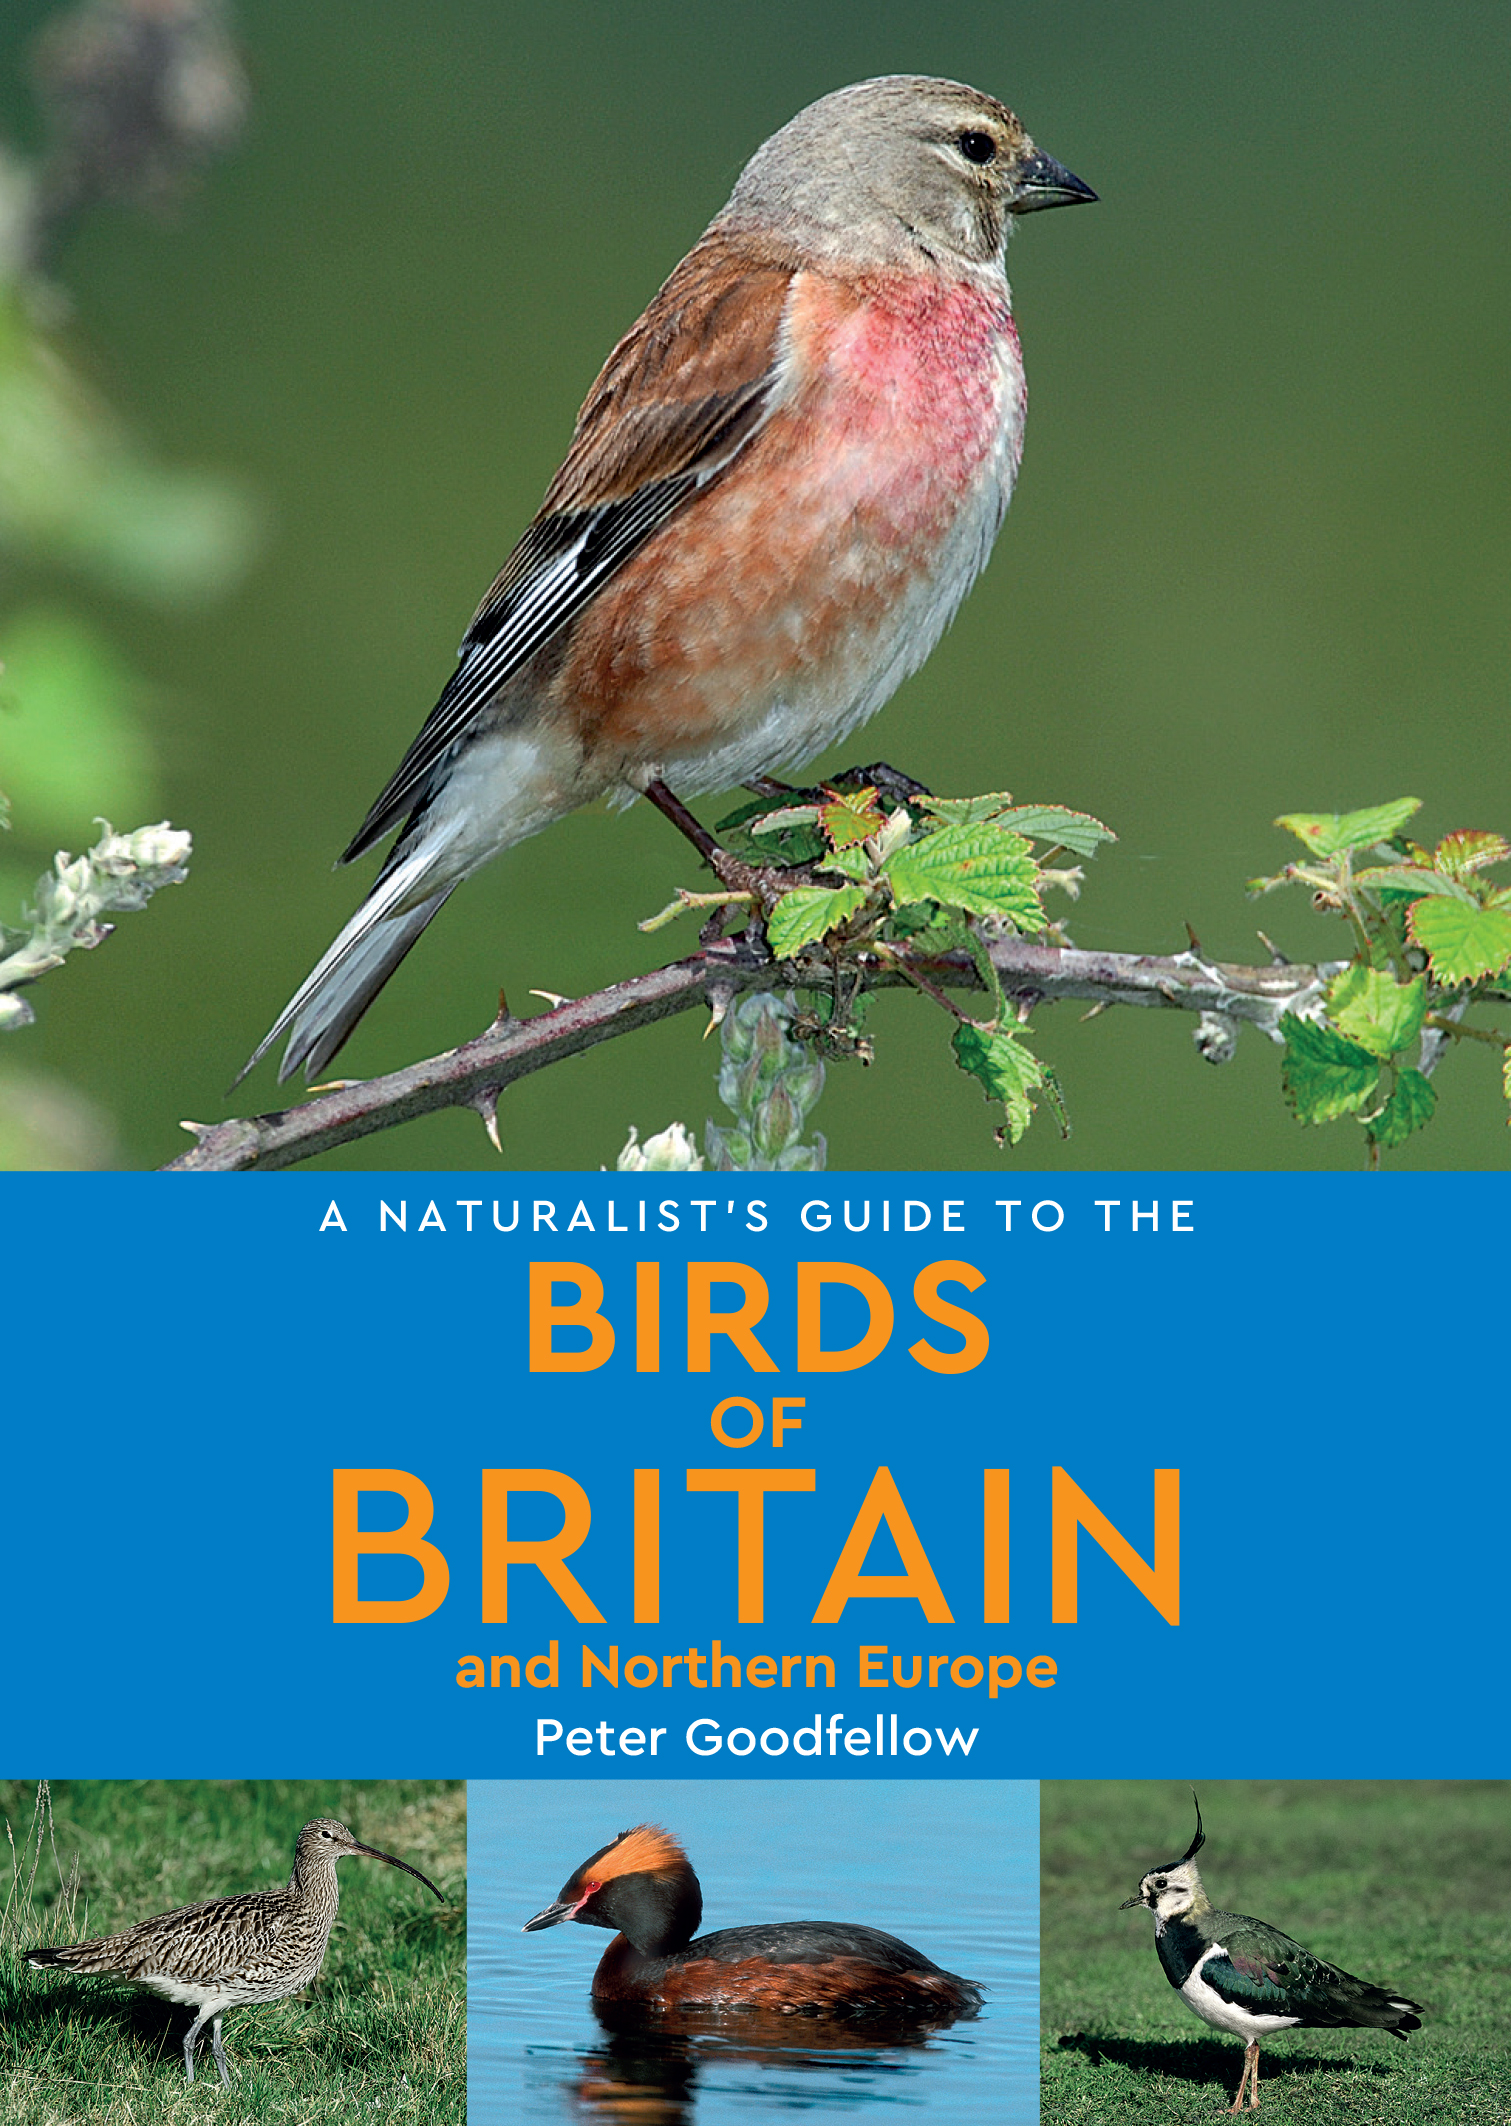 A Naturalist's Guide to the Birds of Britain & Northern Europe